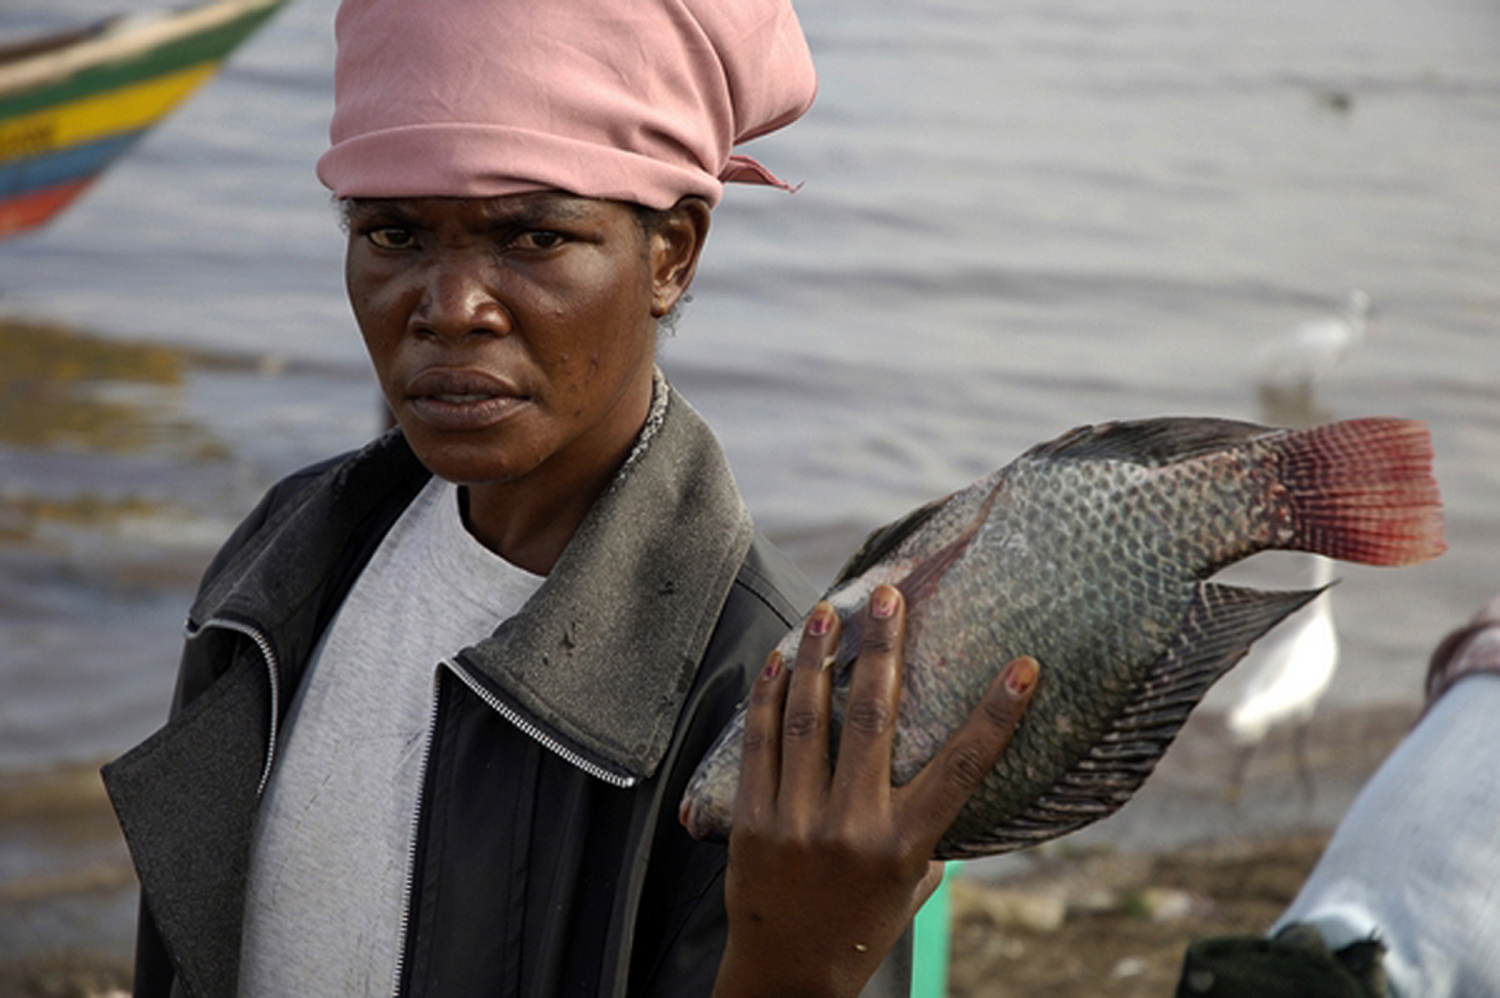 A woman displays fish in lake Victoria,Kenya 2008. Since fish is their common food in Kisumu.